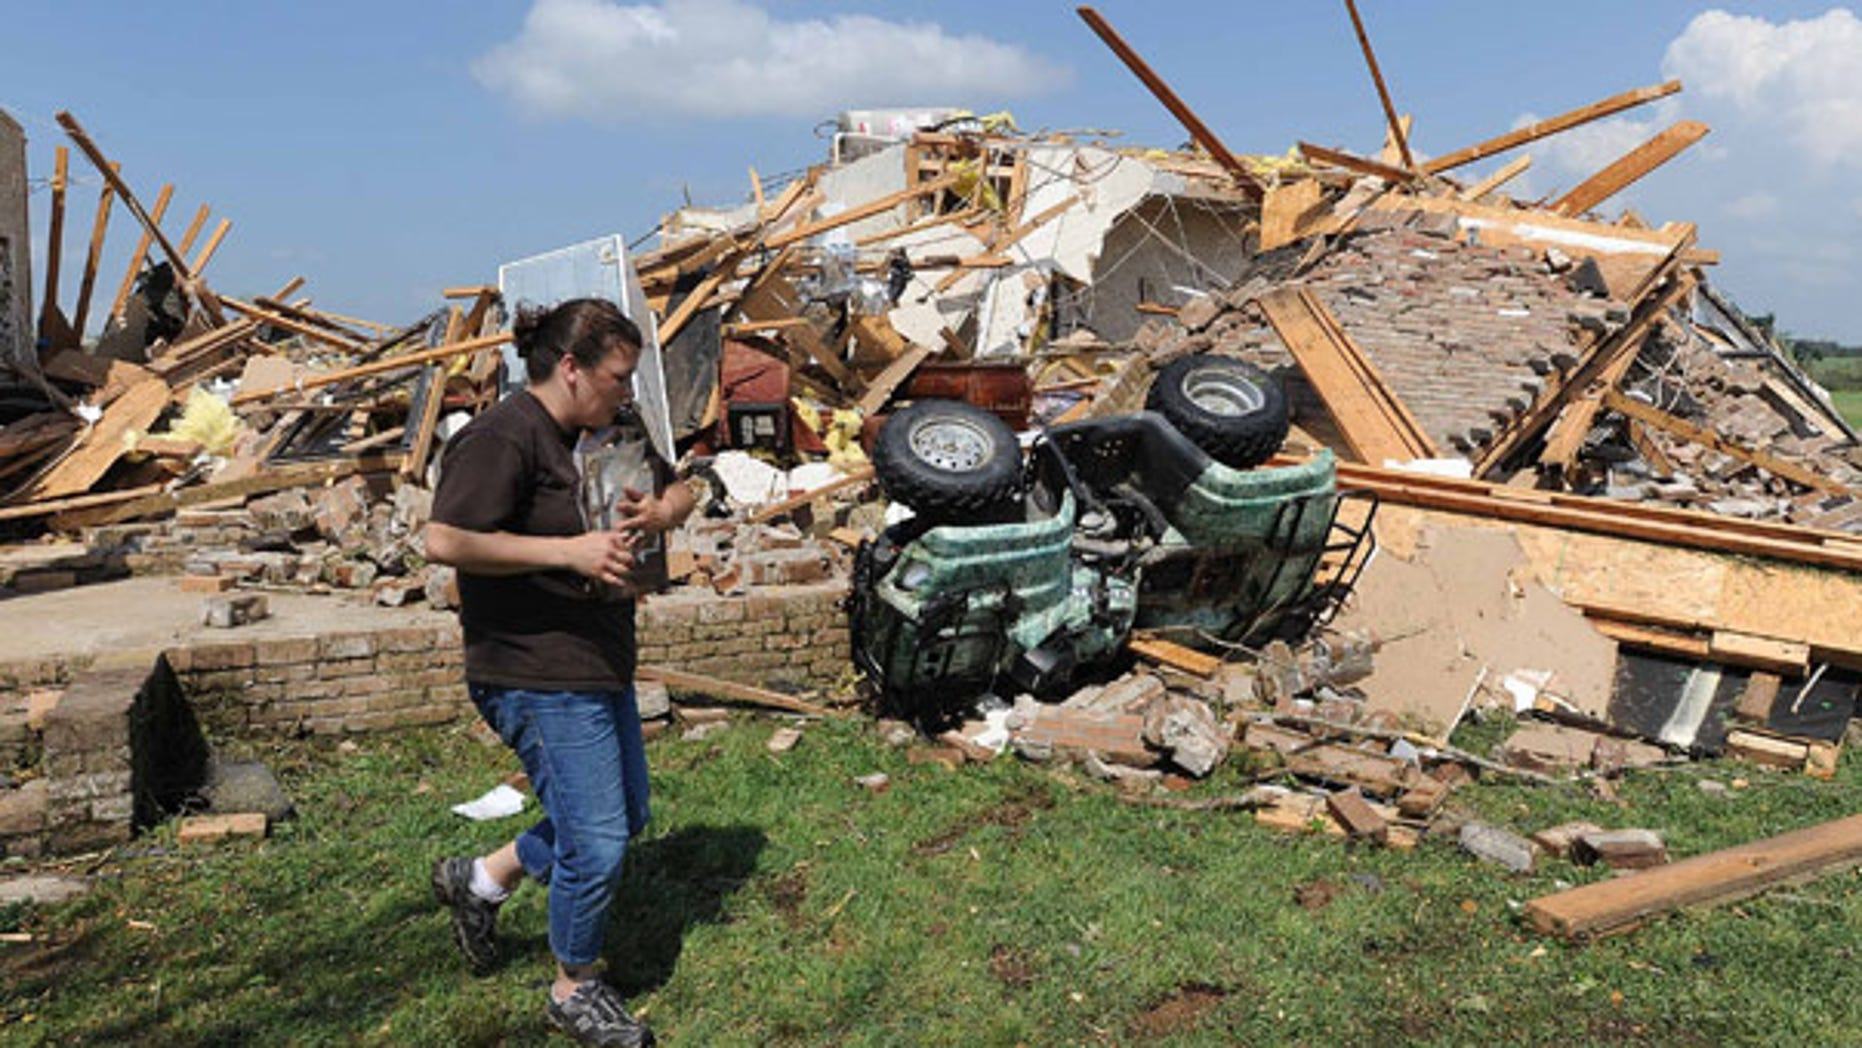 April 24: A woman helps her friend recover photos after a tornado swept through Holmes County, Miss.